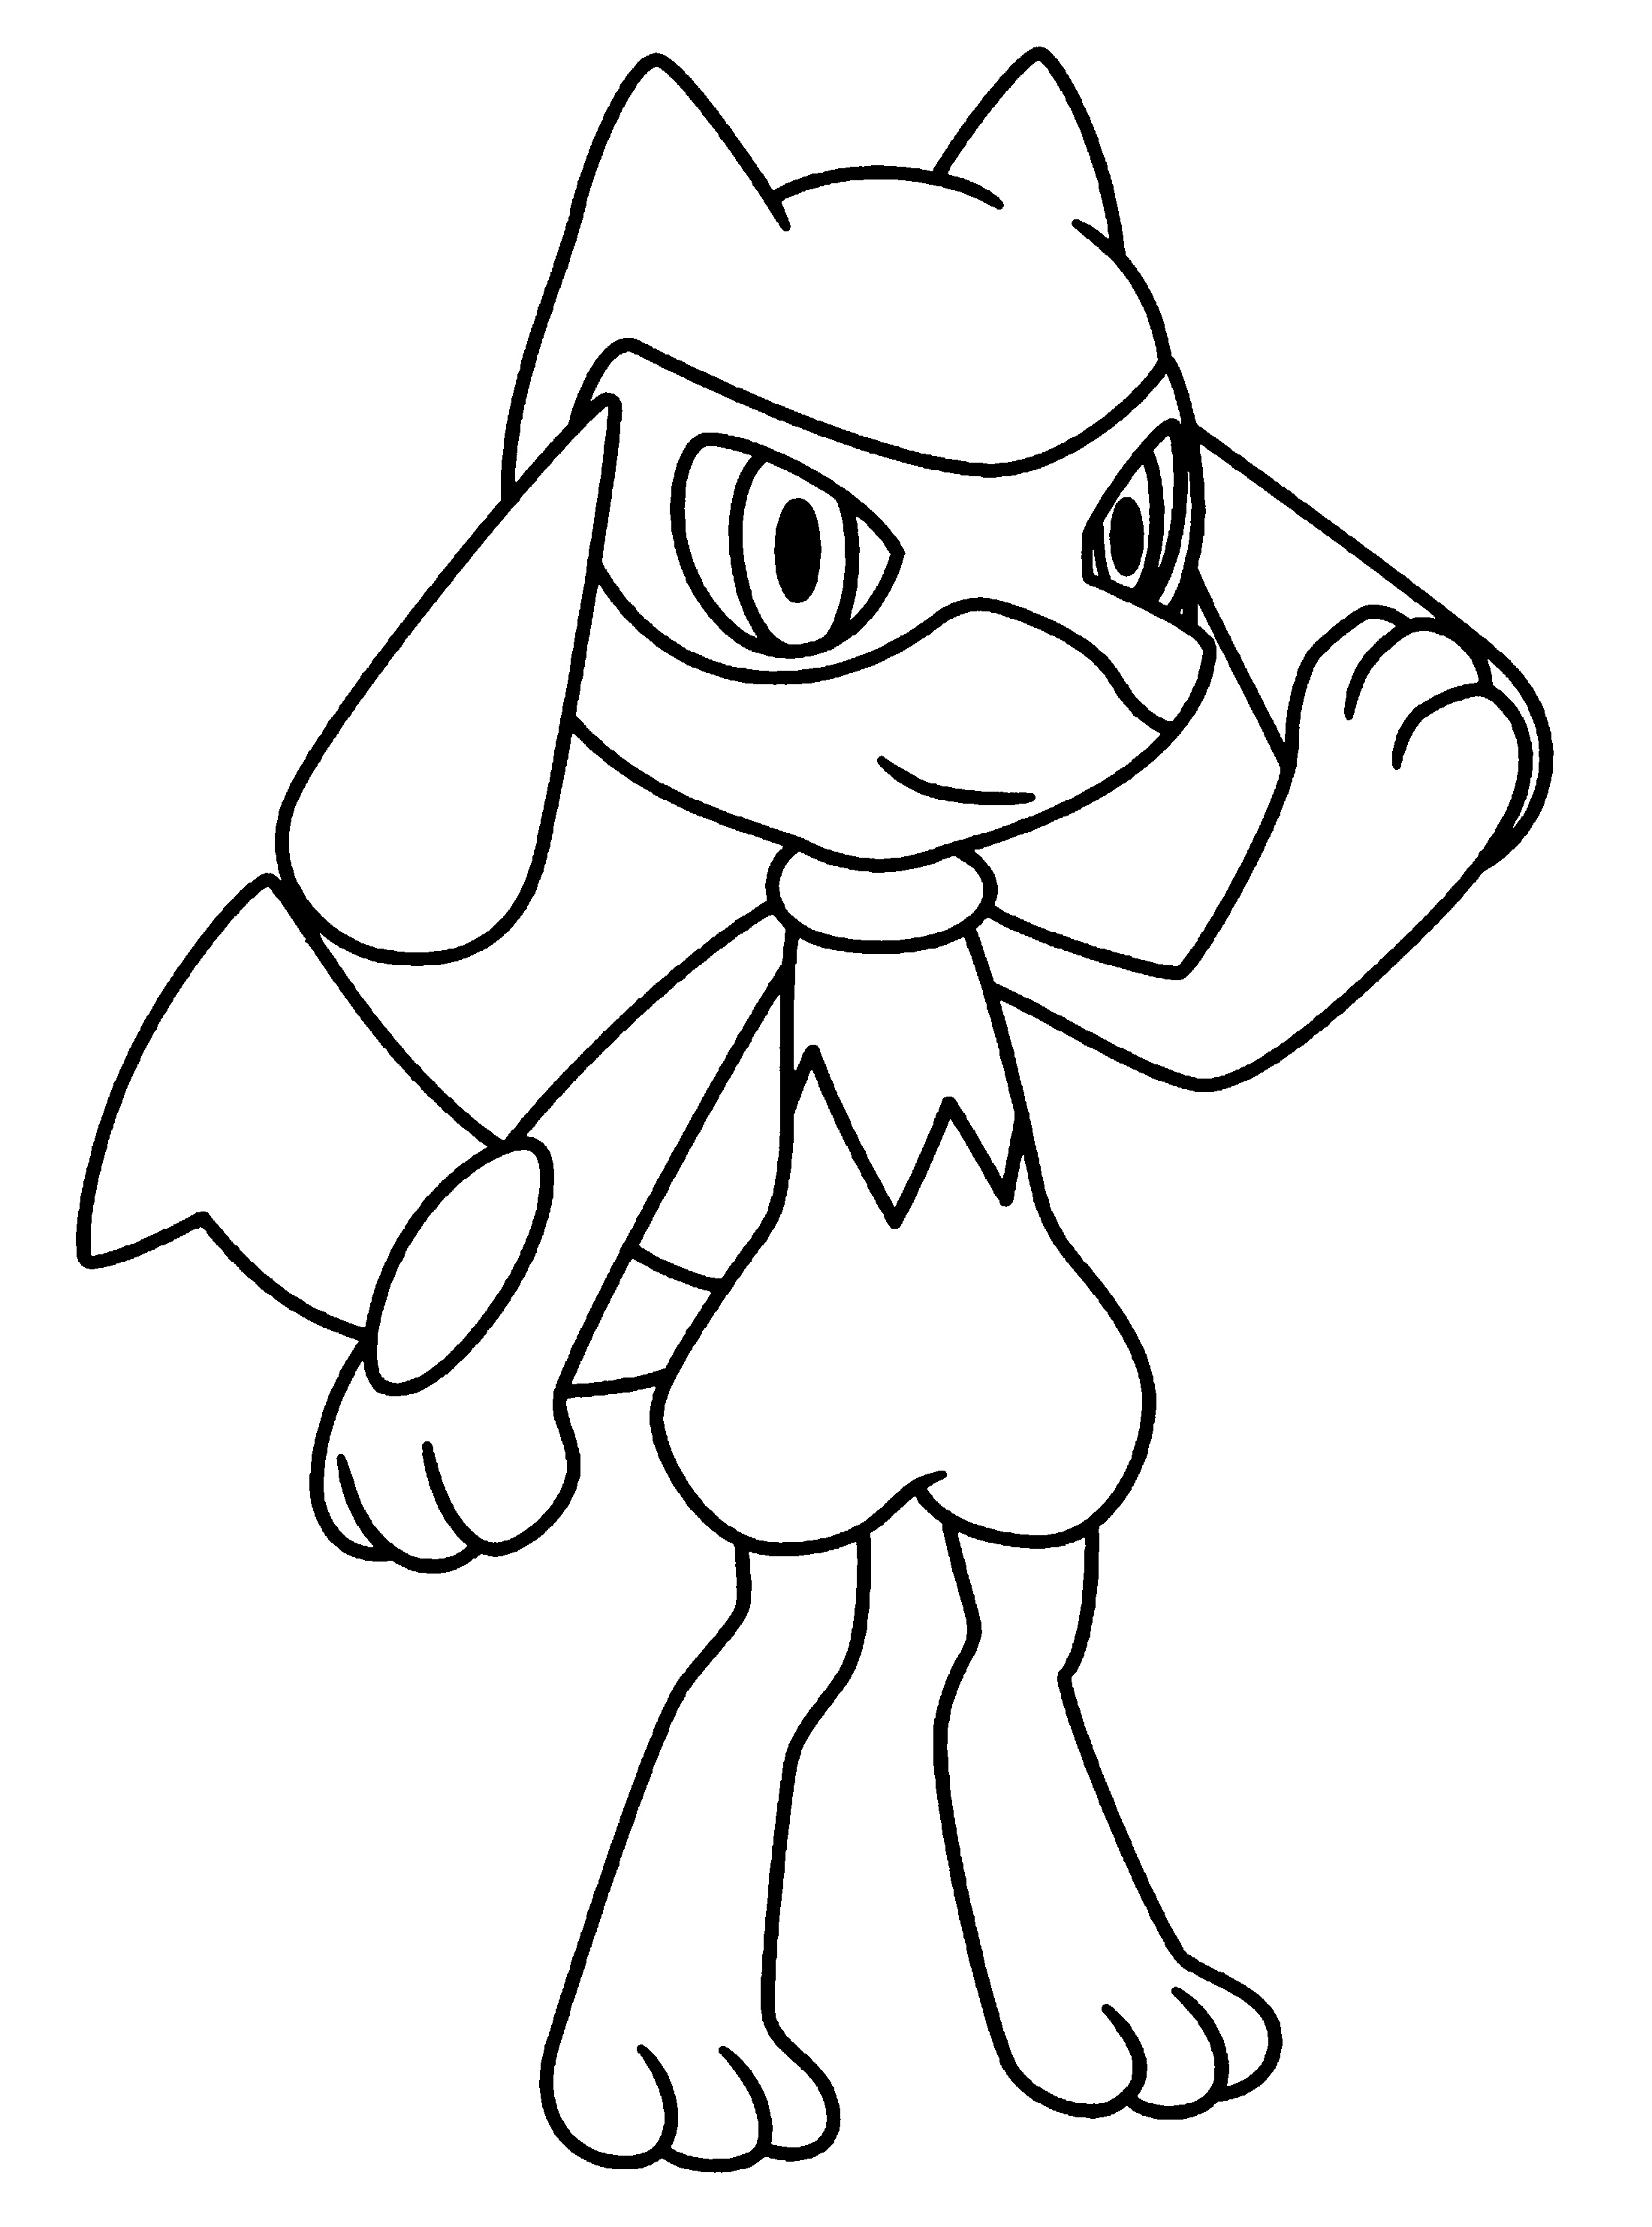 Lucario Coloring Page To Print K5 Worksheets